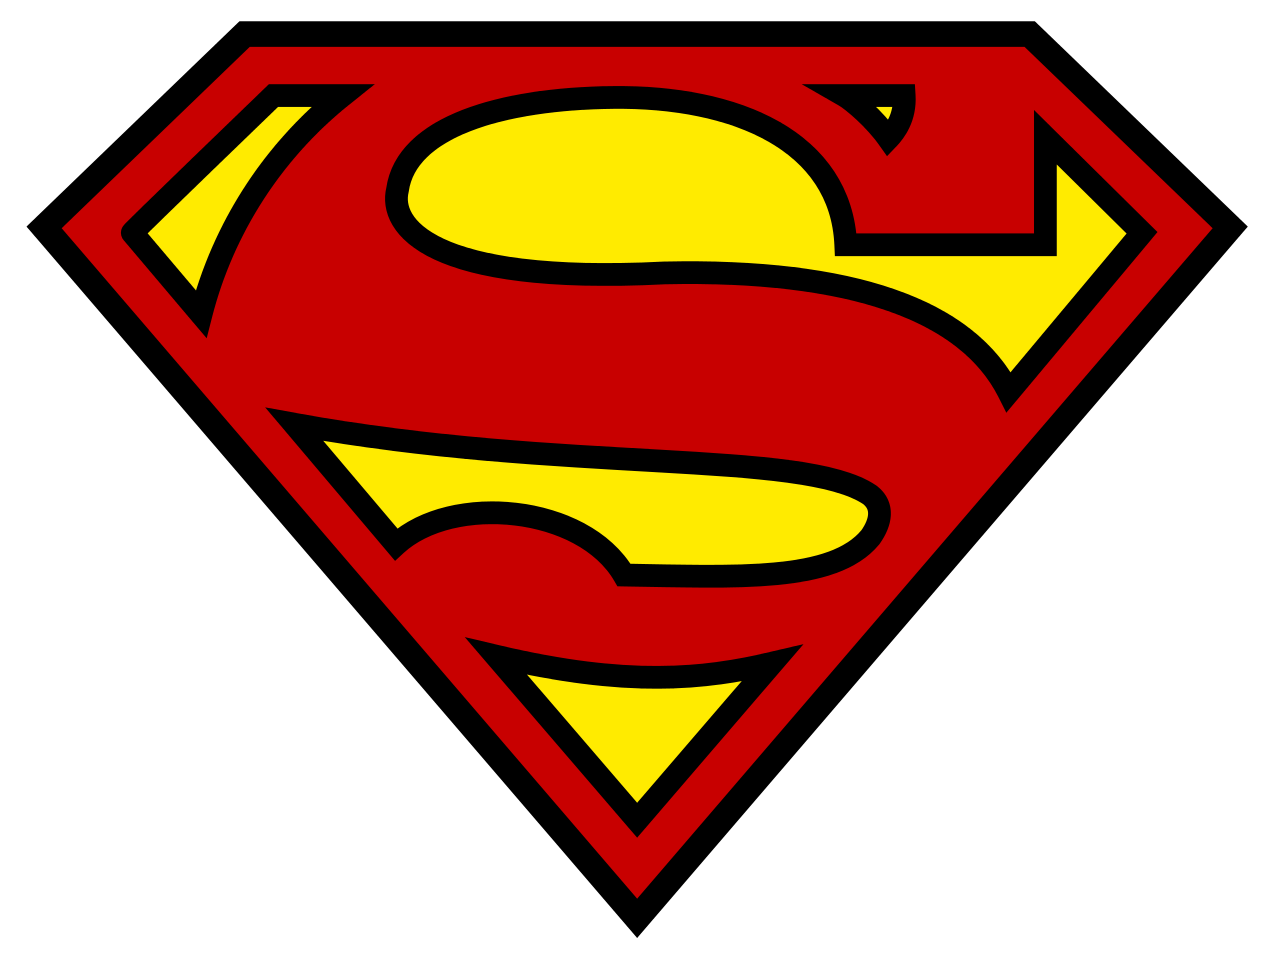 Superman logo transparent png. Stickpng comics and fantasy